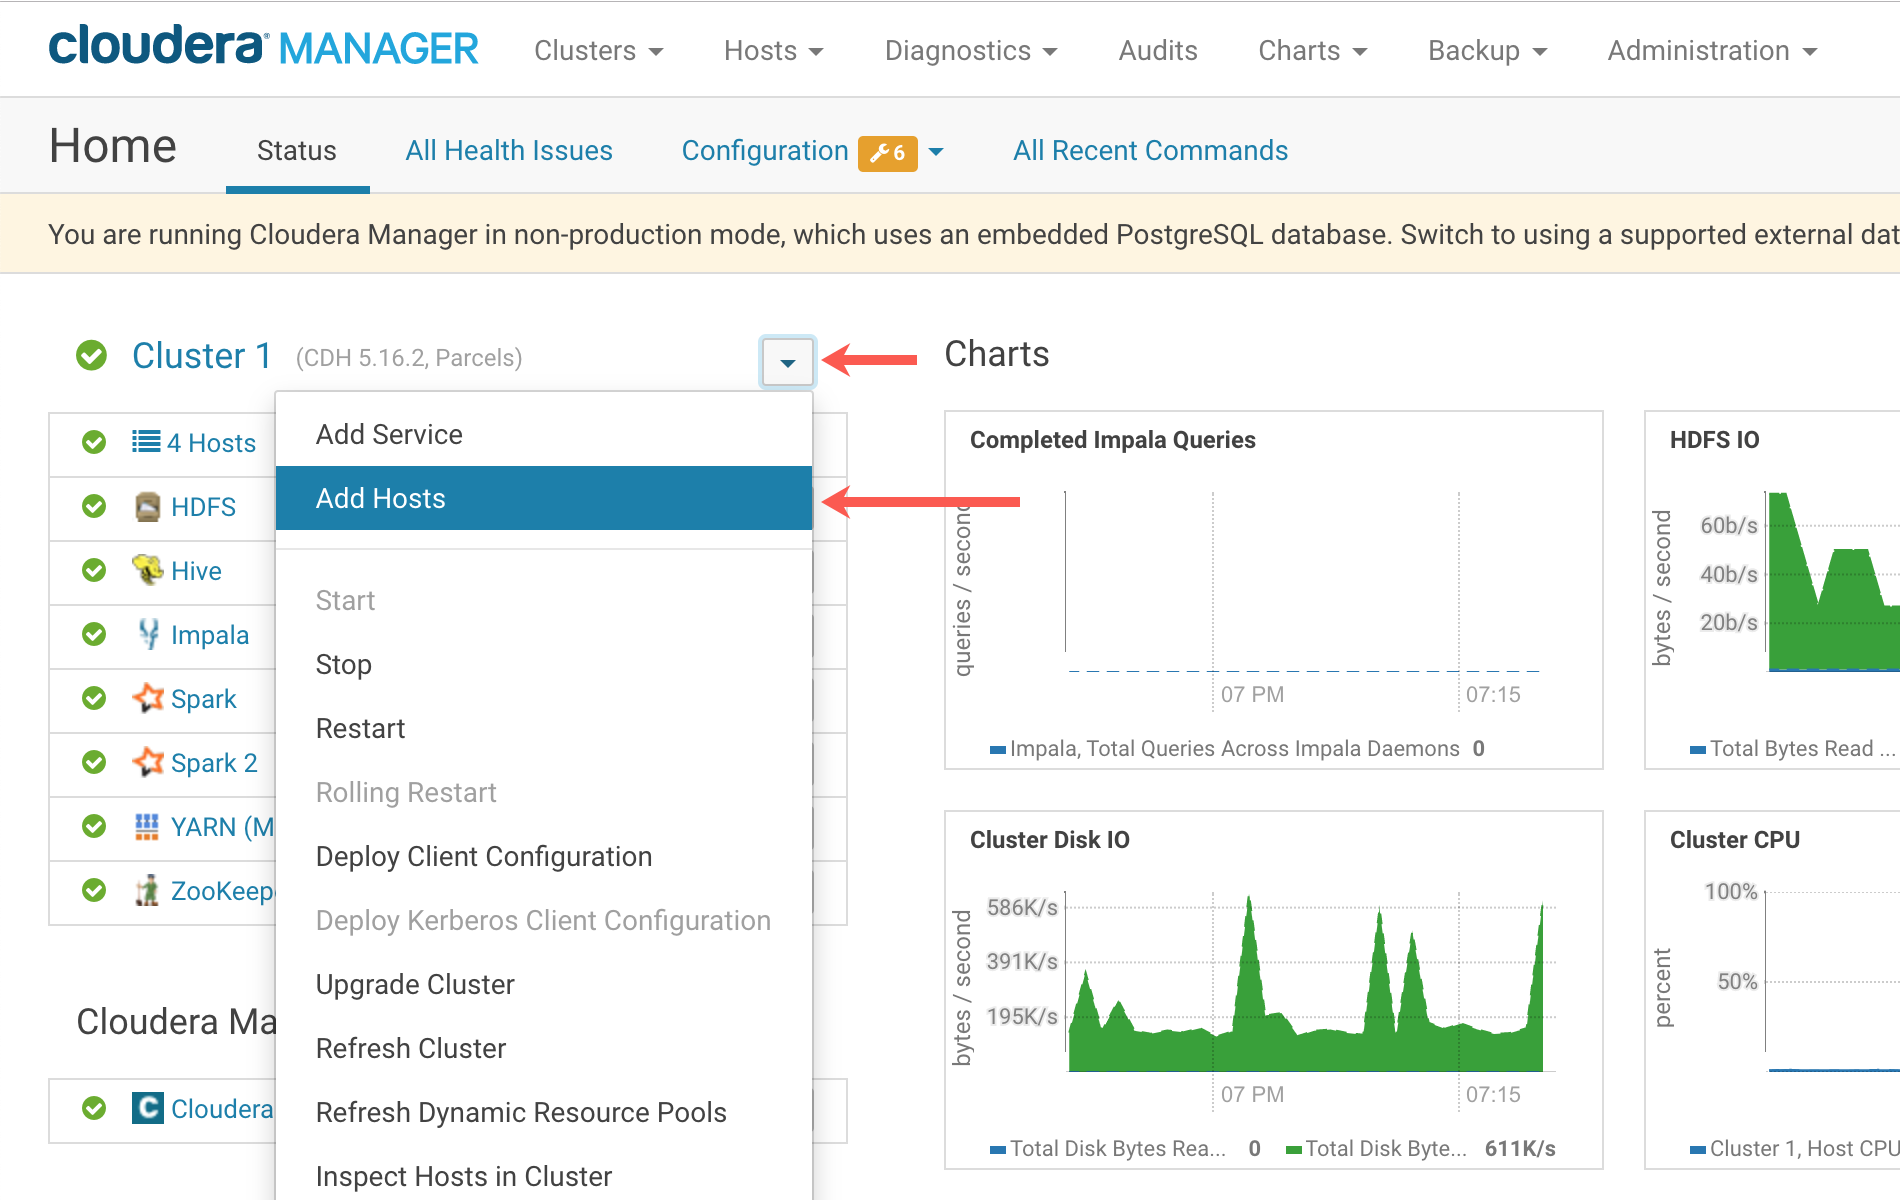 Cloudera Manager dashboard, Add Hosts option UI screenshot